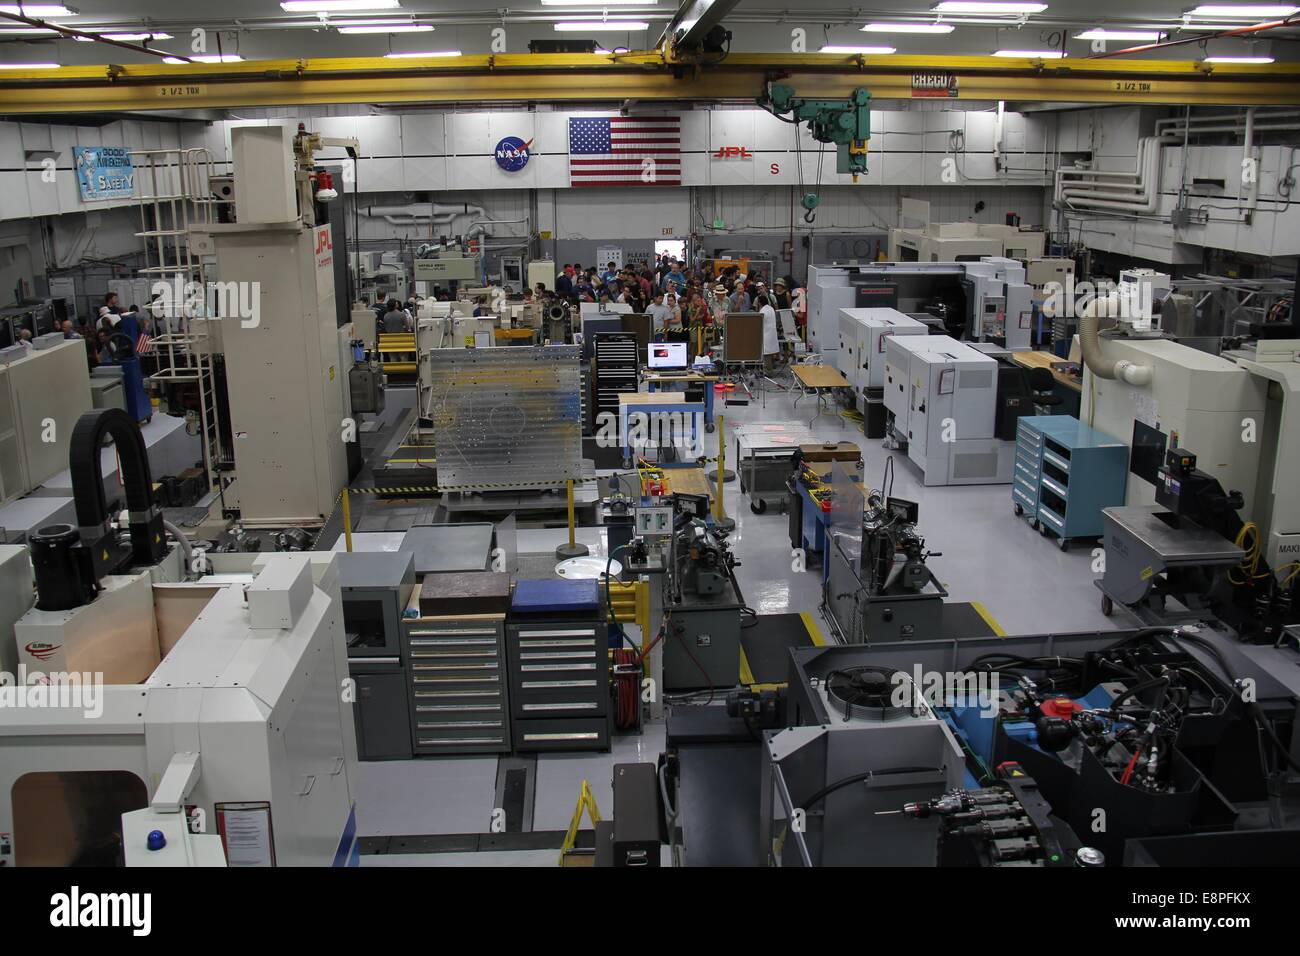 Los Angeles, USA. 12th Oct, 2014. Photo taken on Oct. 12, 2014 shows the spacecraft fabrication facility at NASA's - Stock Image